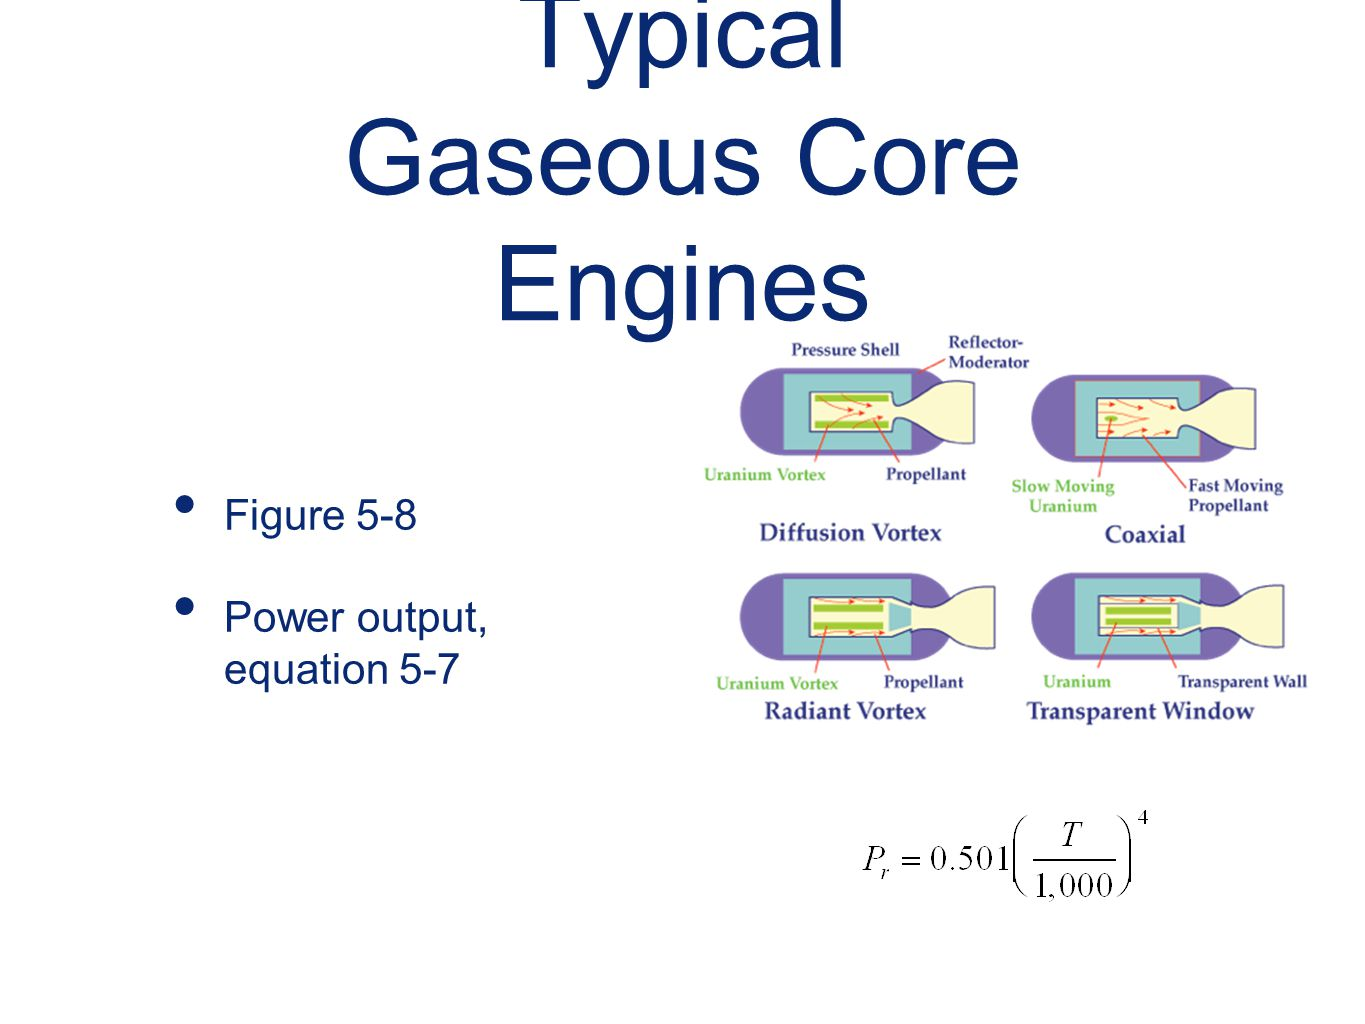 Typical Gaseous Core Engines